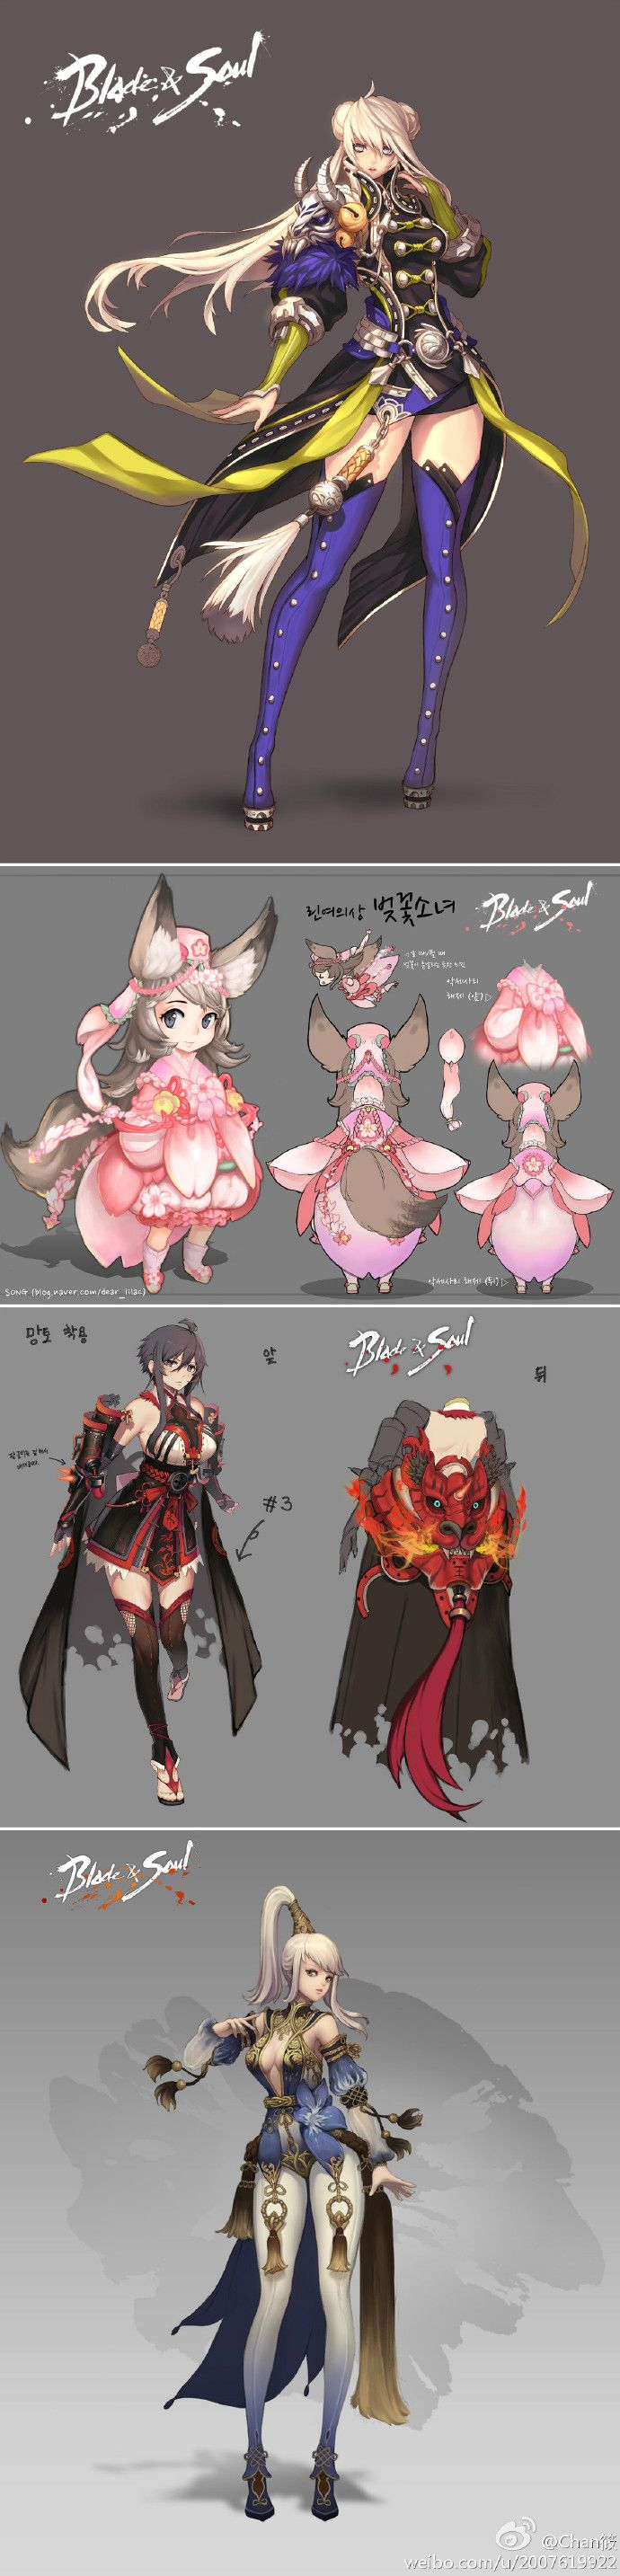 Blade and Soul Characters